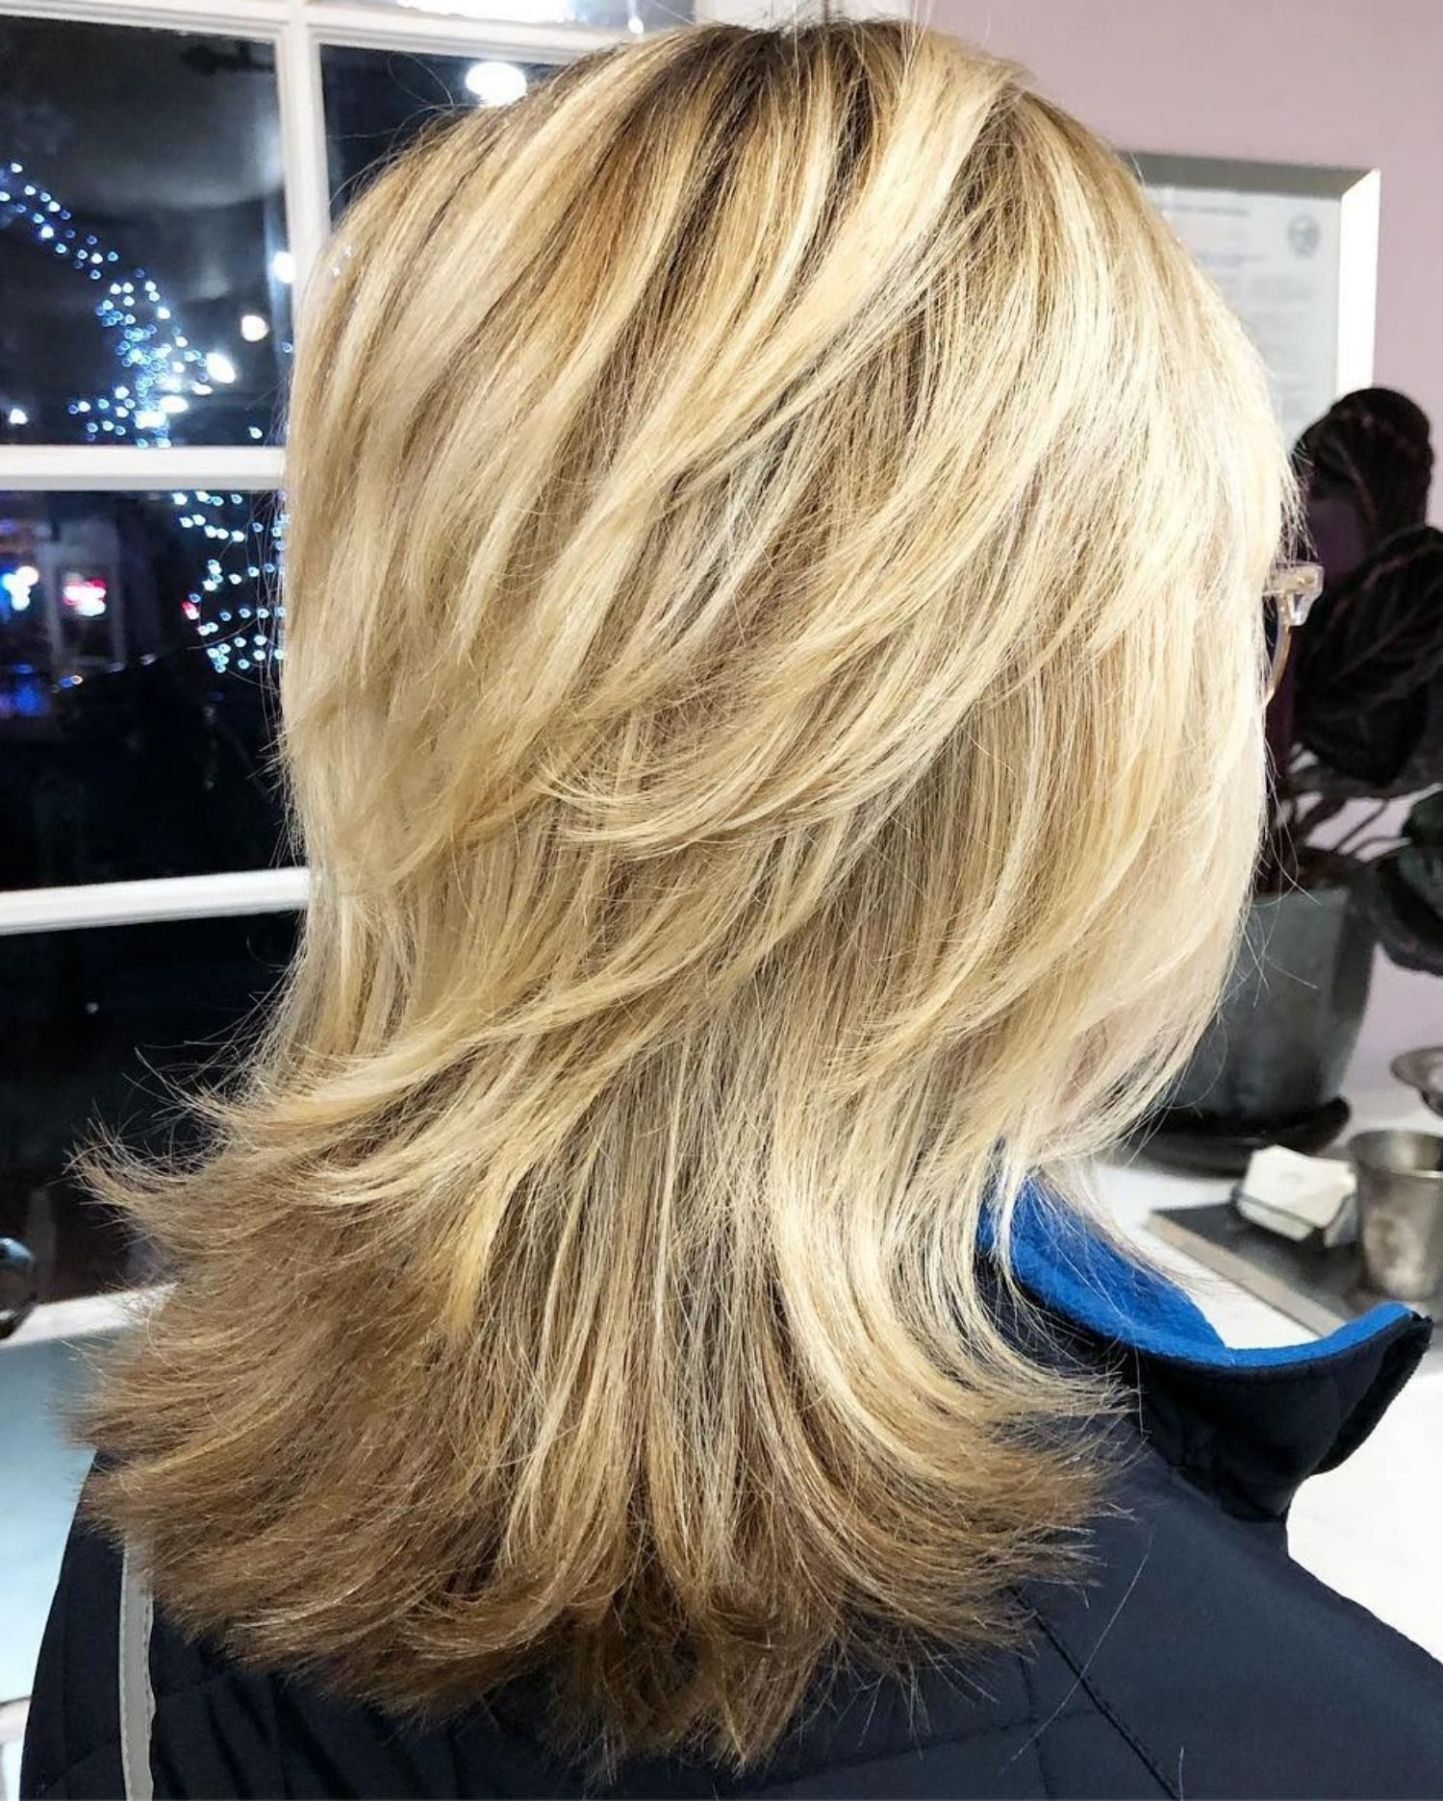 Mid Length Feathered Shag For Thick Hair In 2020 Modern Shag Haircut Medium Shag Haircuts Shag Haircut